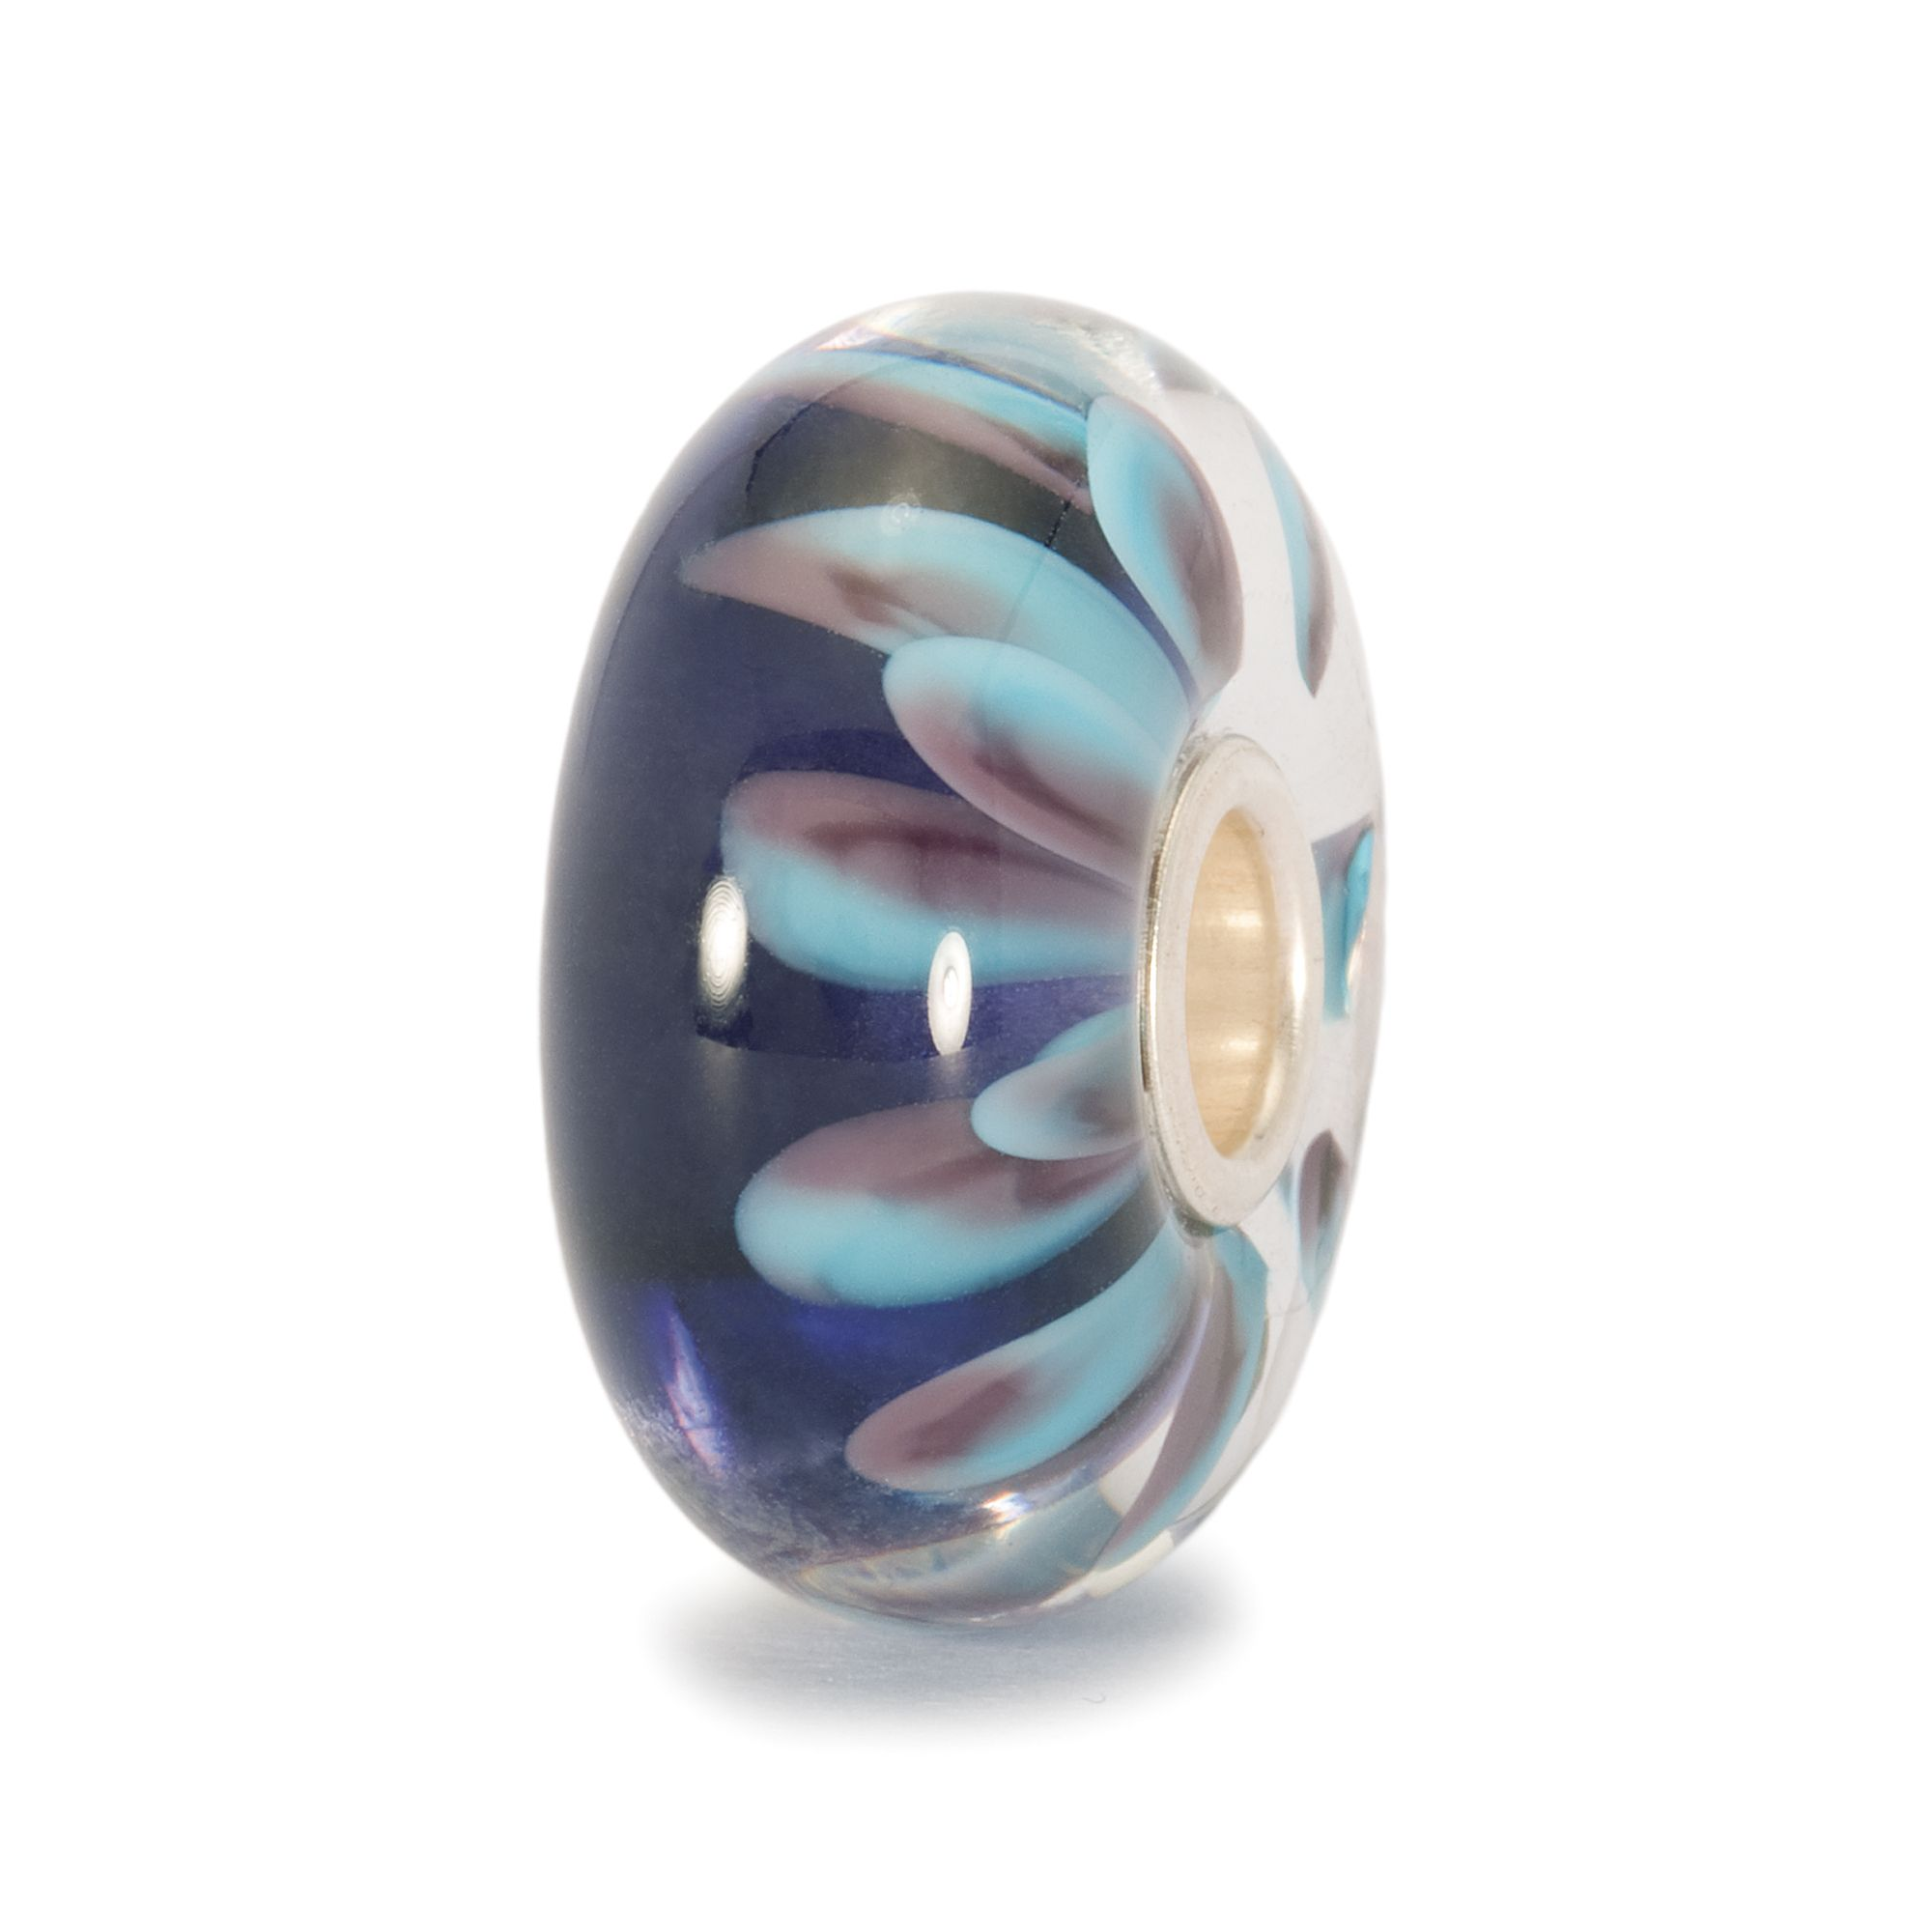 Blue Petal glass charm bead